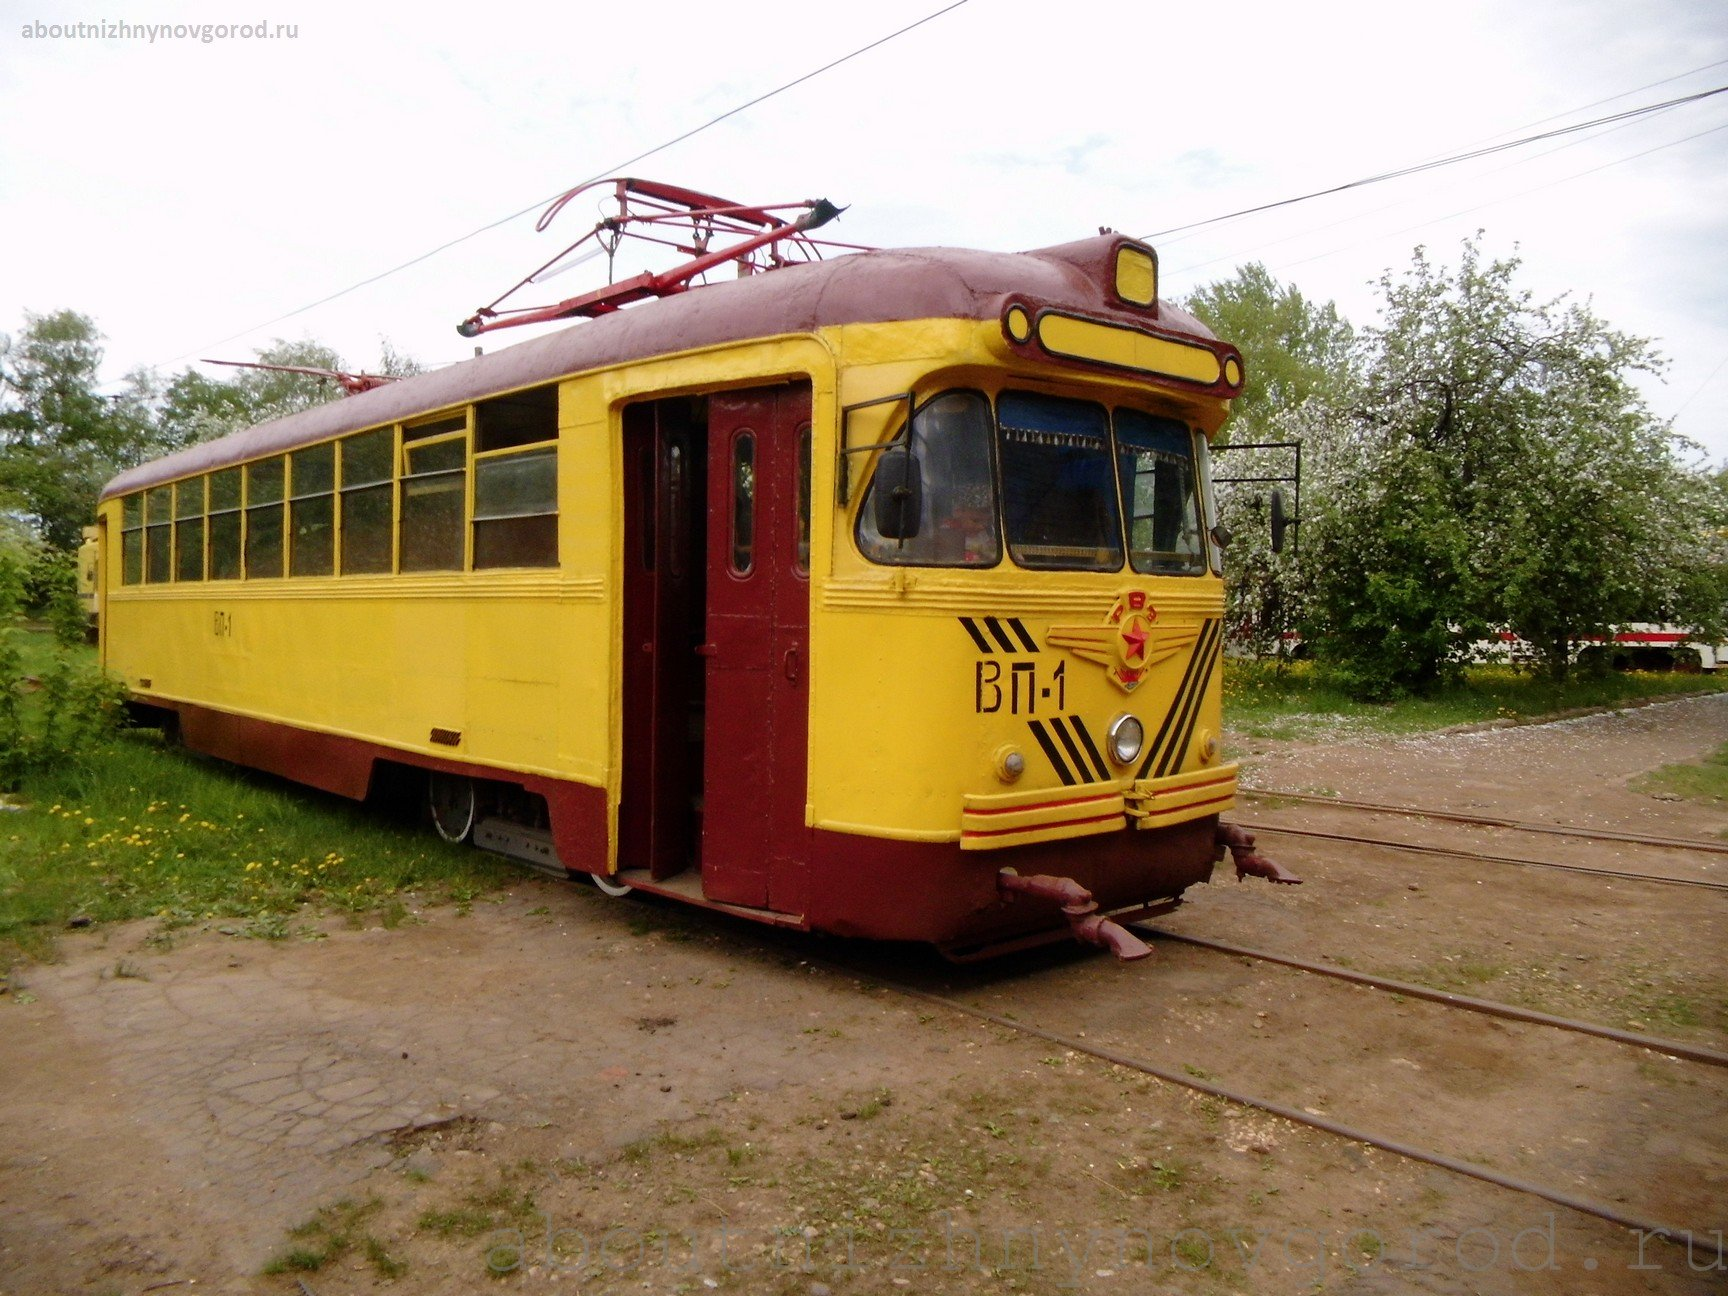 And what transports this tram!? Some barrel…